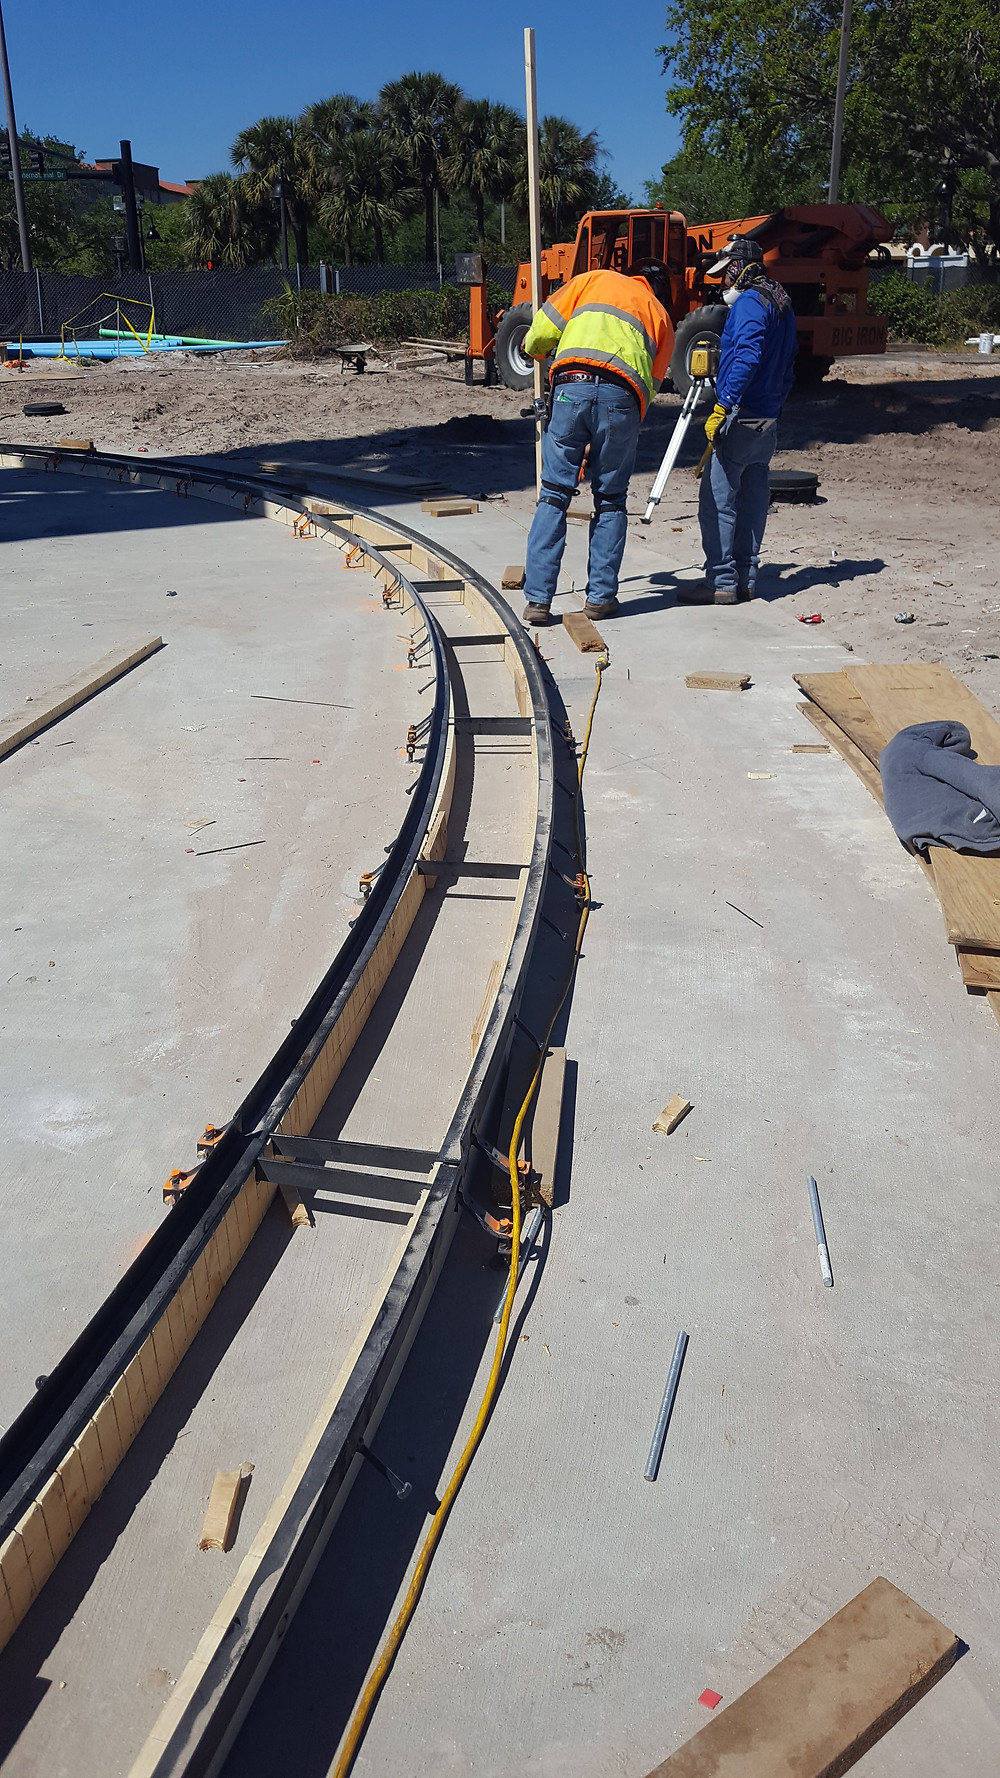 This contractor is hand forming a radius trench drain at the base of the Star Flier amusement park ride.